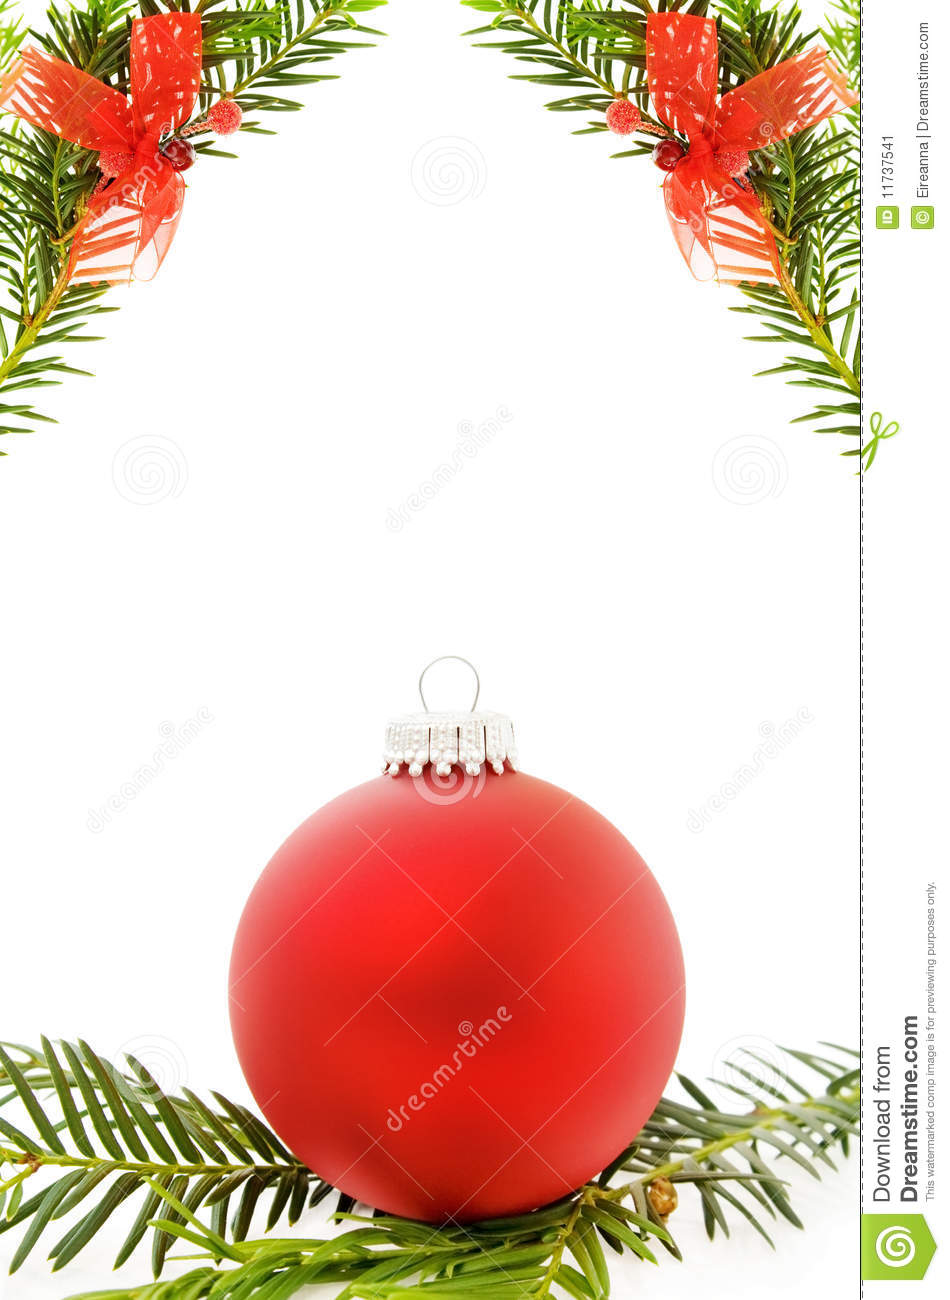 Christmas Festive Border With Red Bauble Stock Image